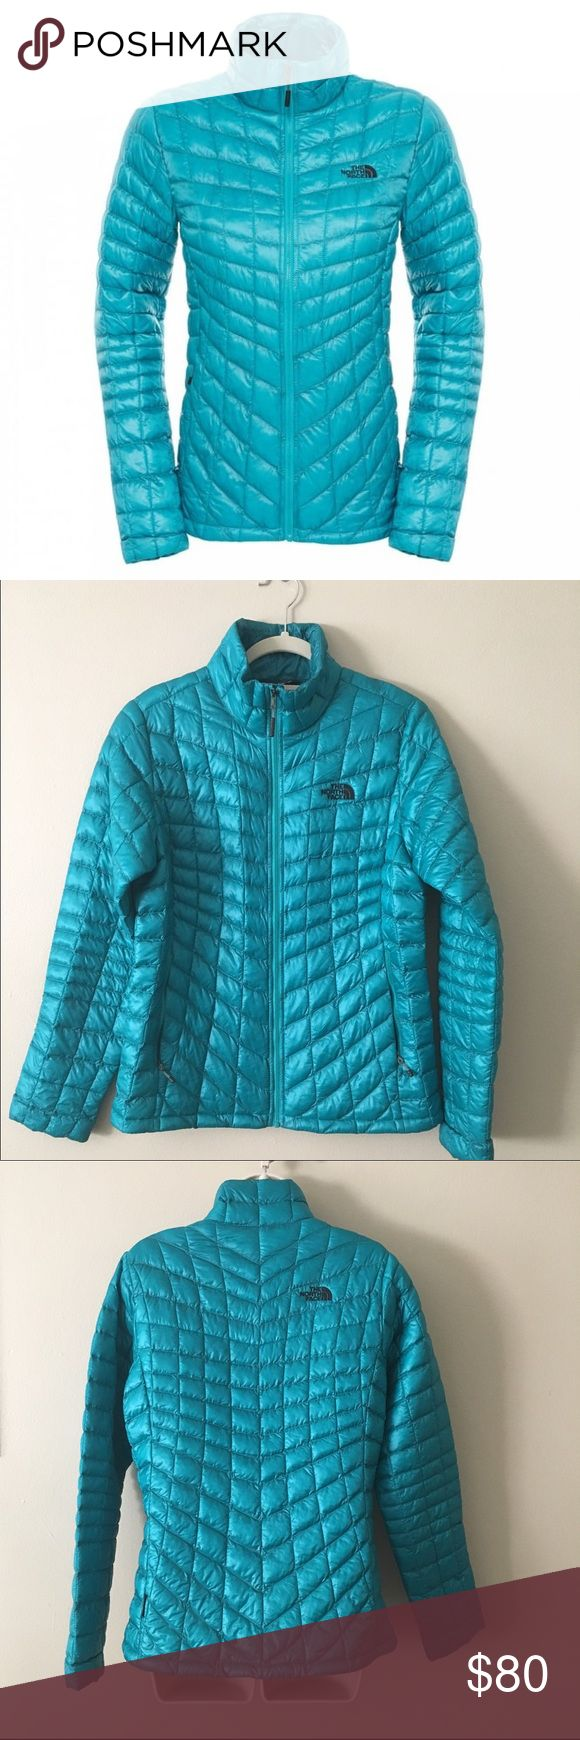 The North Face Thermoball Jacket in kokomo green Worn twice, like new condition. Size medium. Beautiful turquoise color. The North Face Jackets & Coats